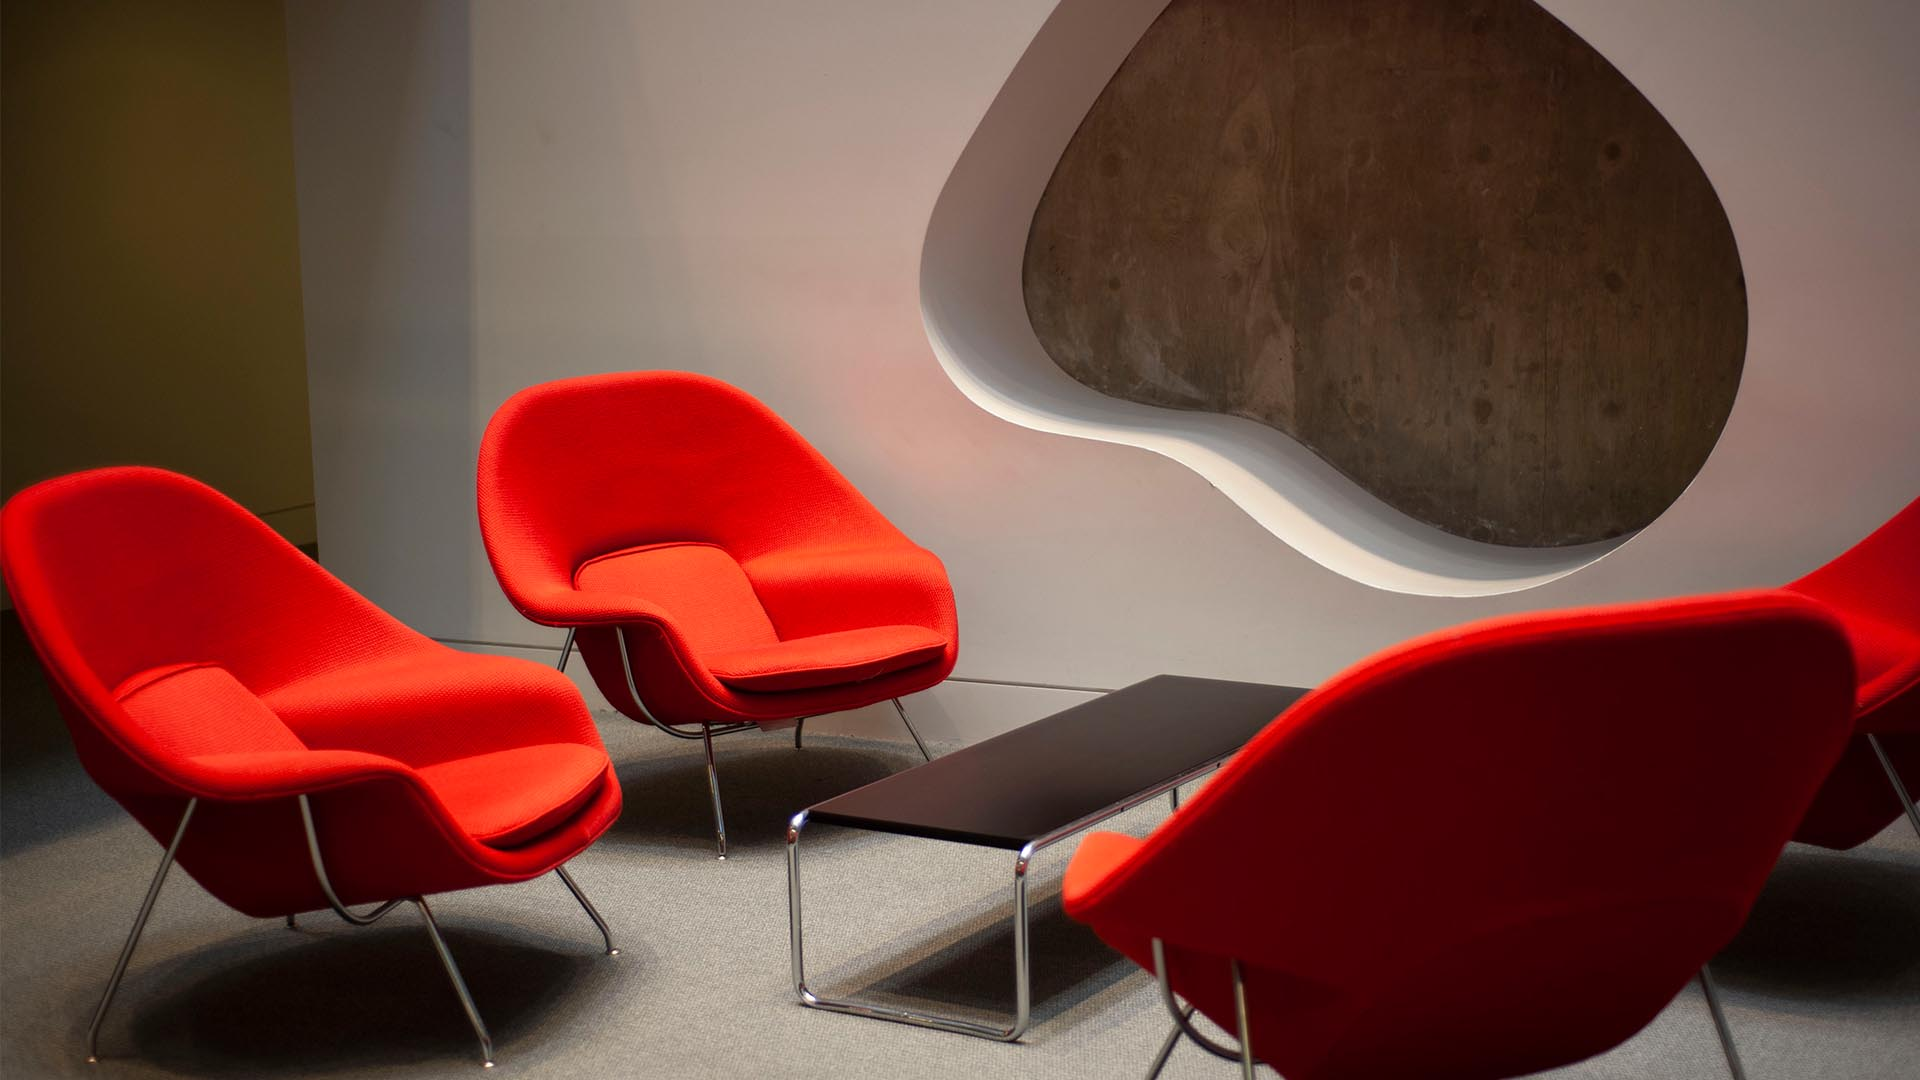 A photo of the iconic orange chairs at the Haas Arts Library.